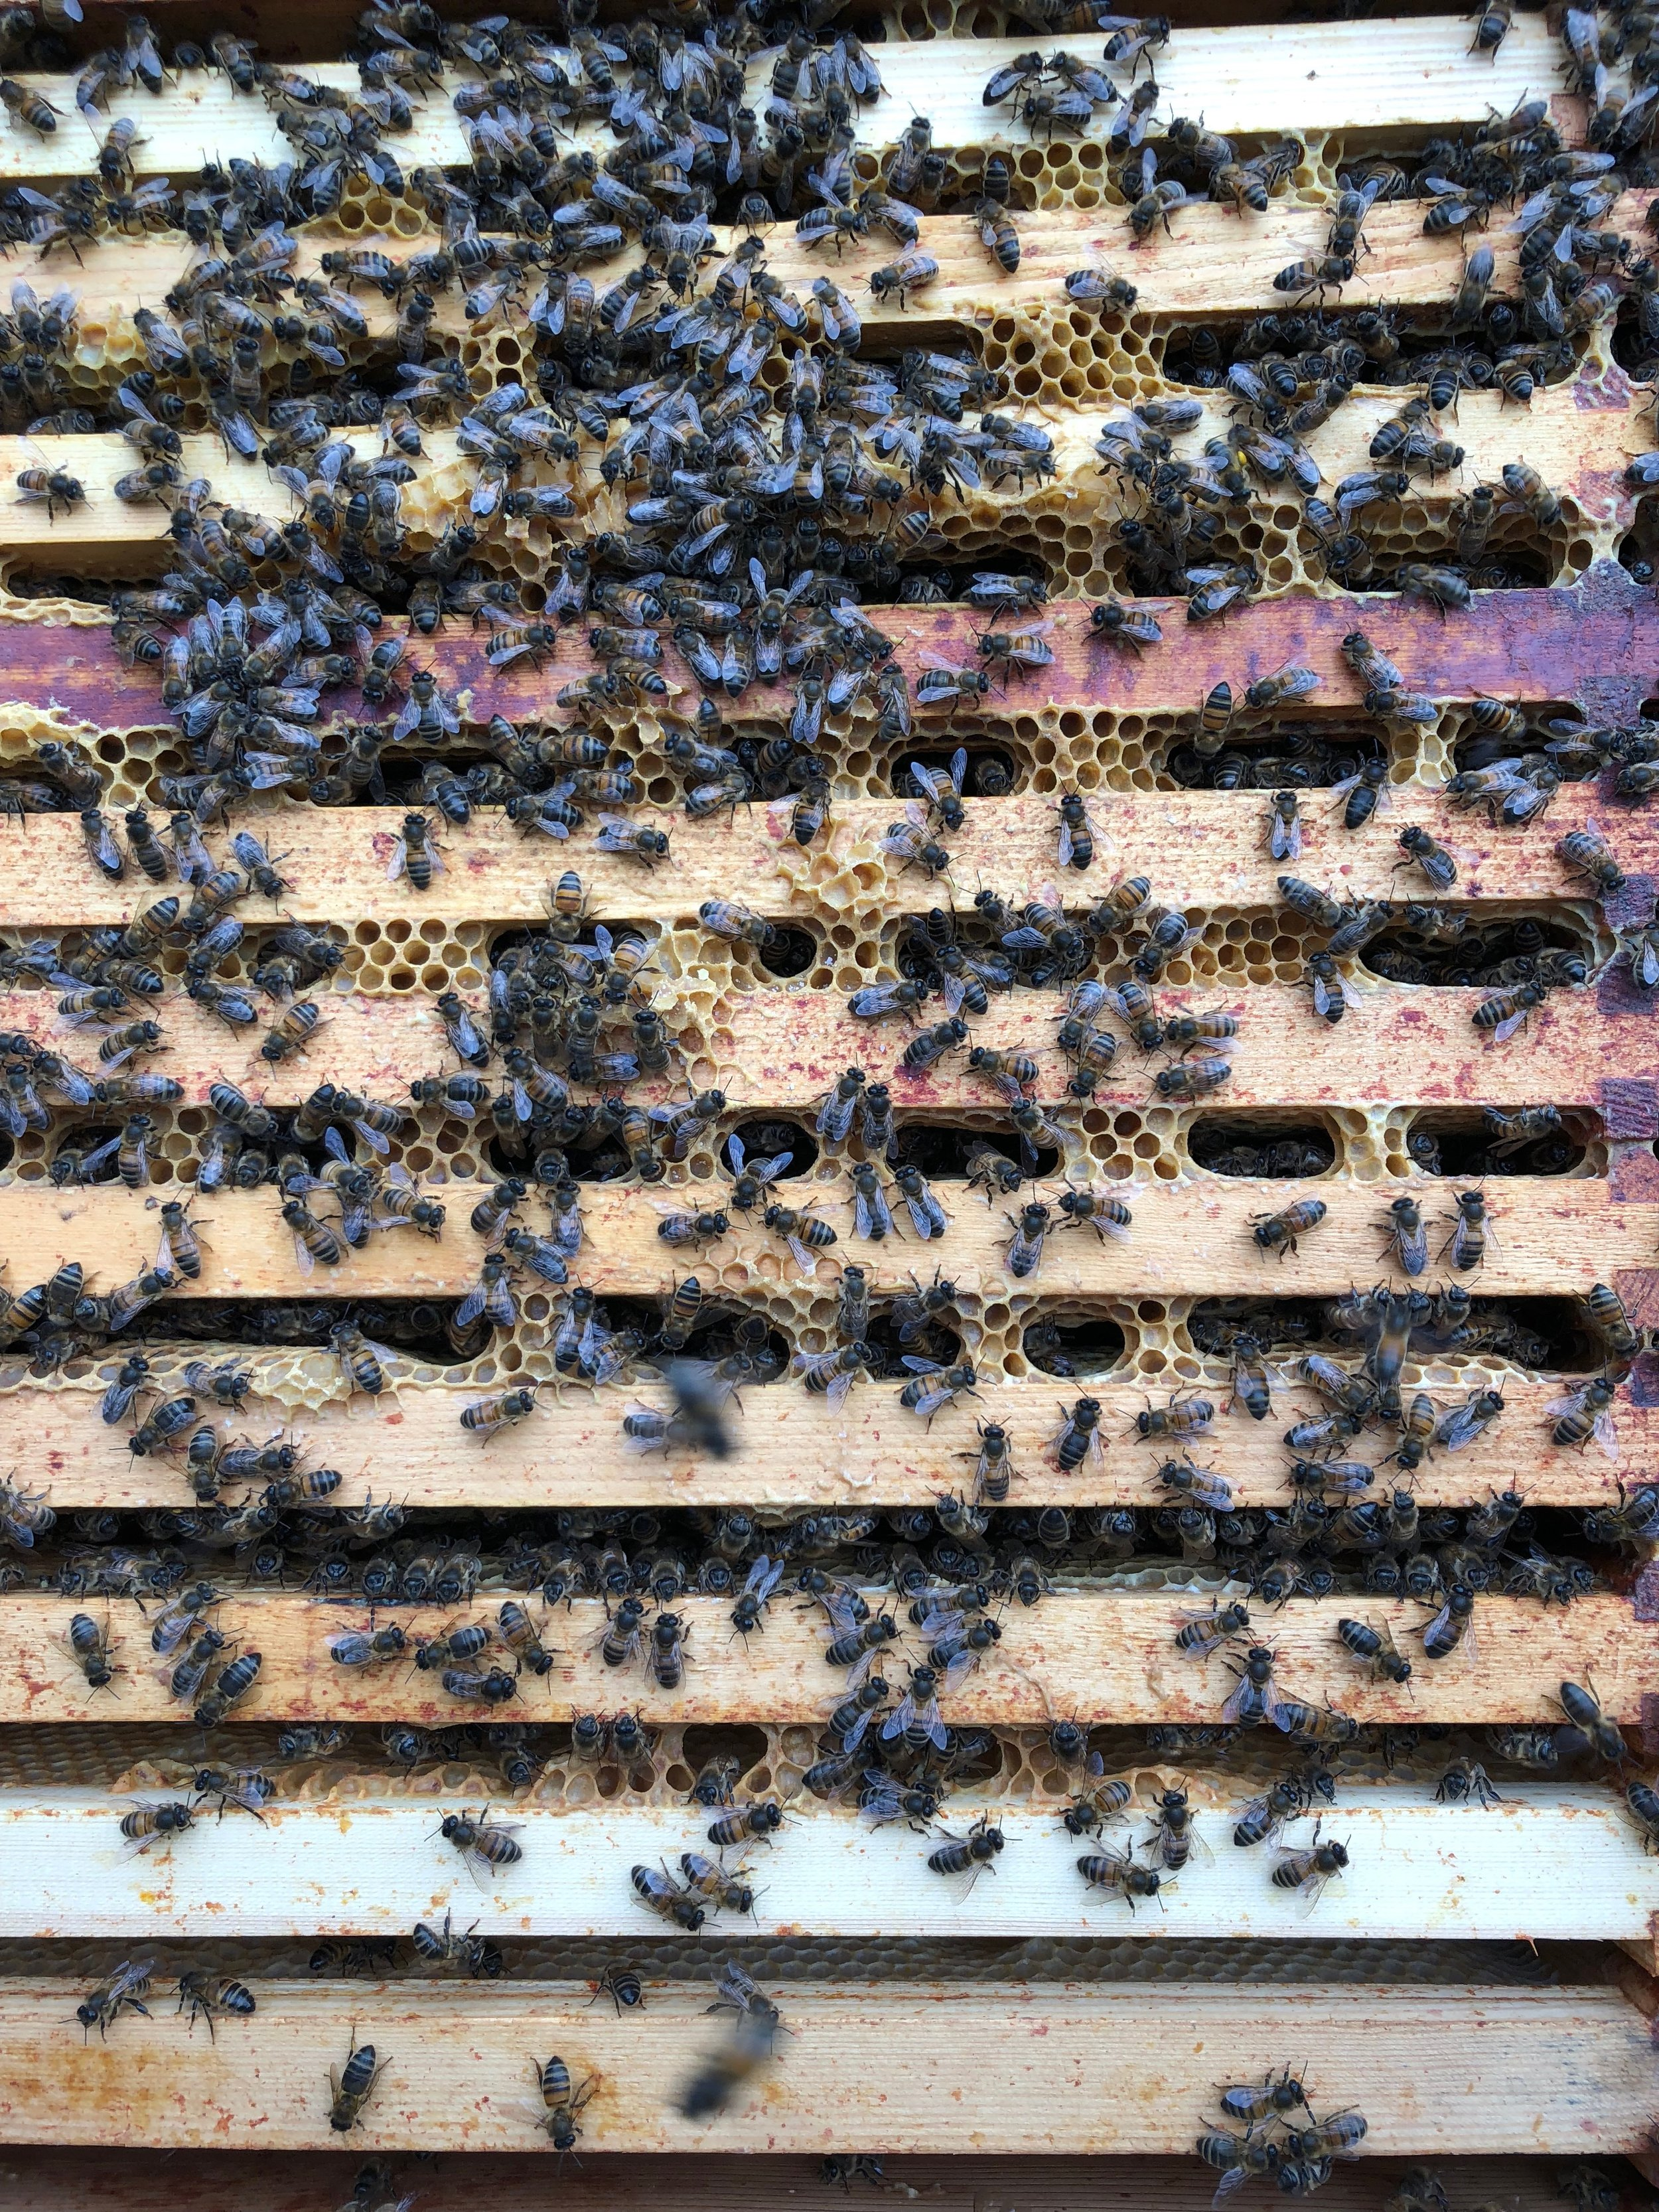 Nice covering of bees on the frames